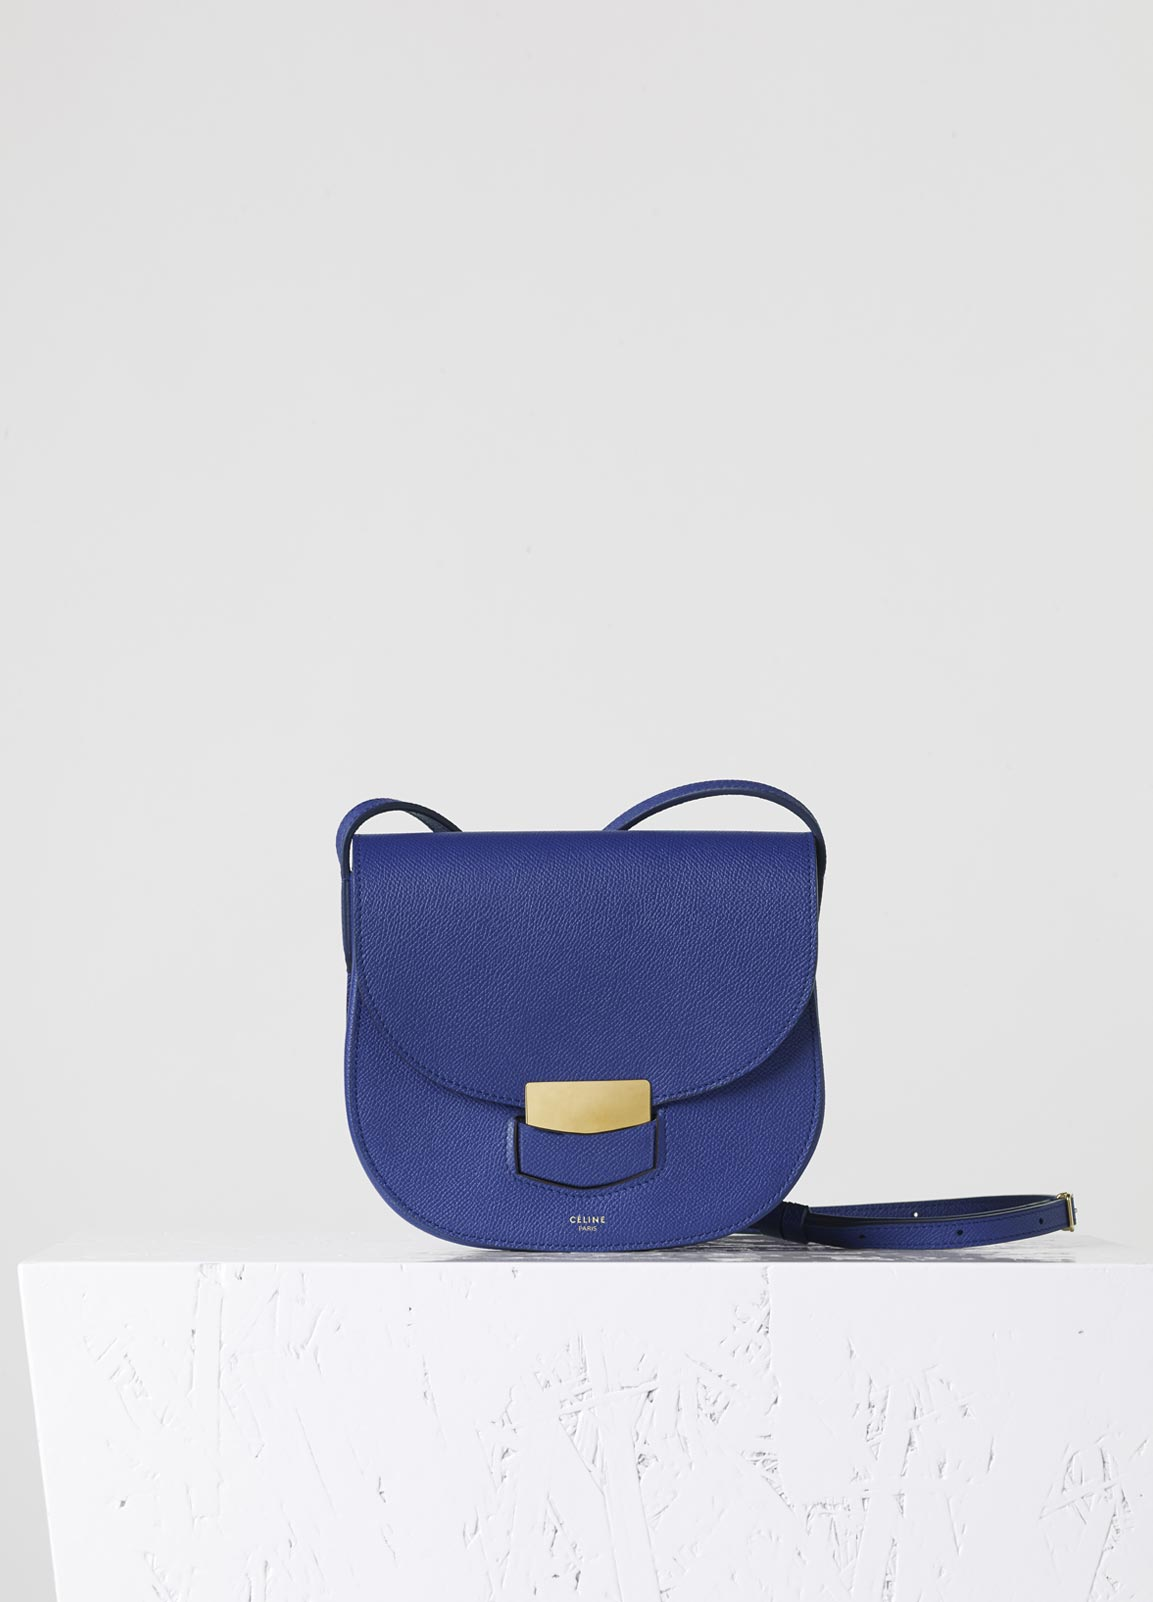 celine mulitcolor small ring bag